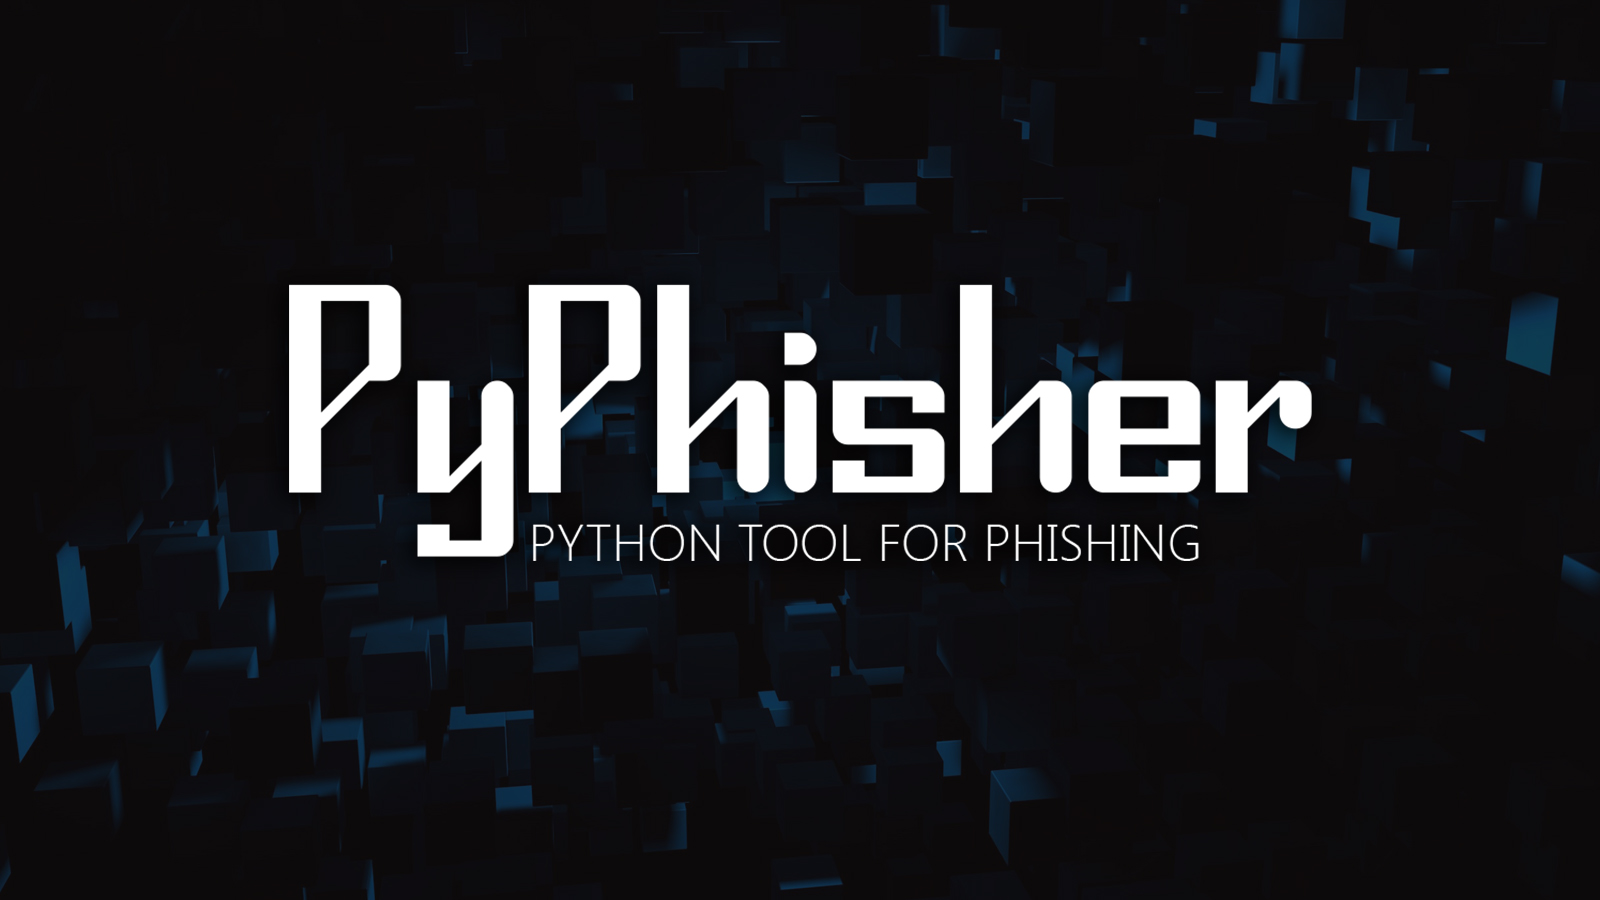 PyPhisher - Python Tool for Phishing